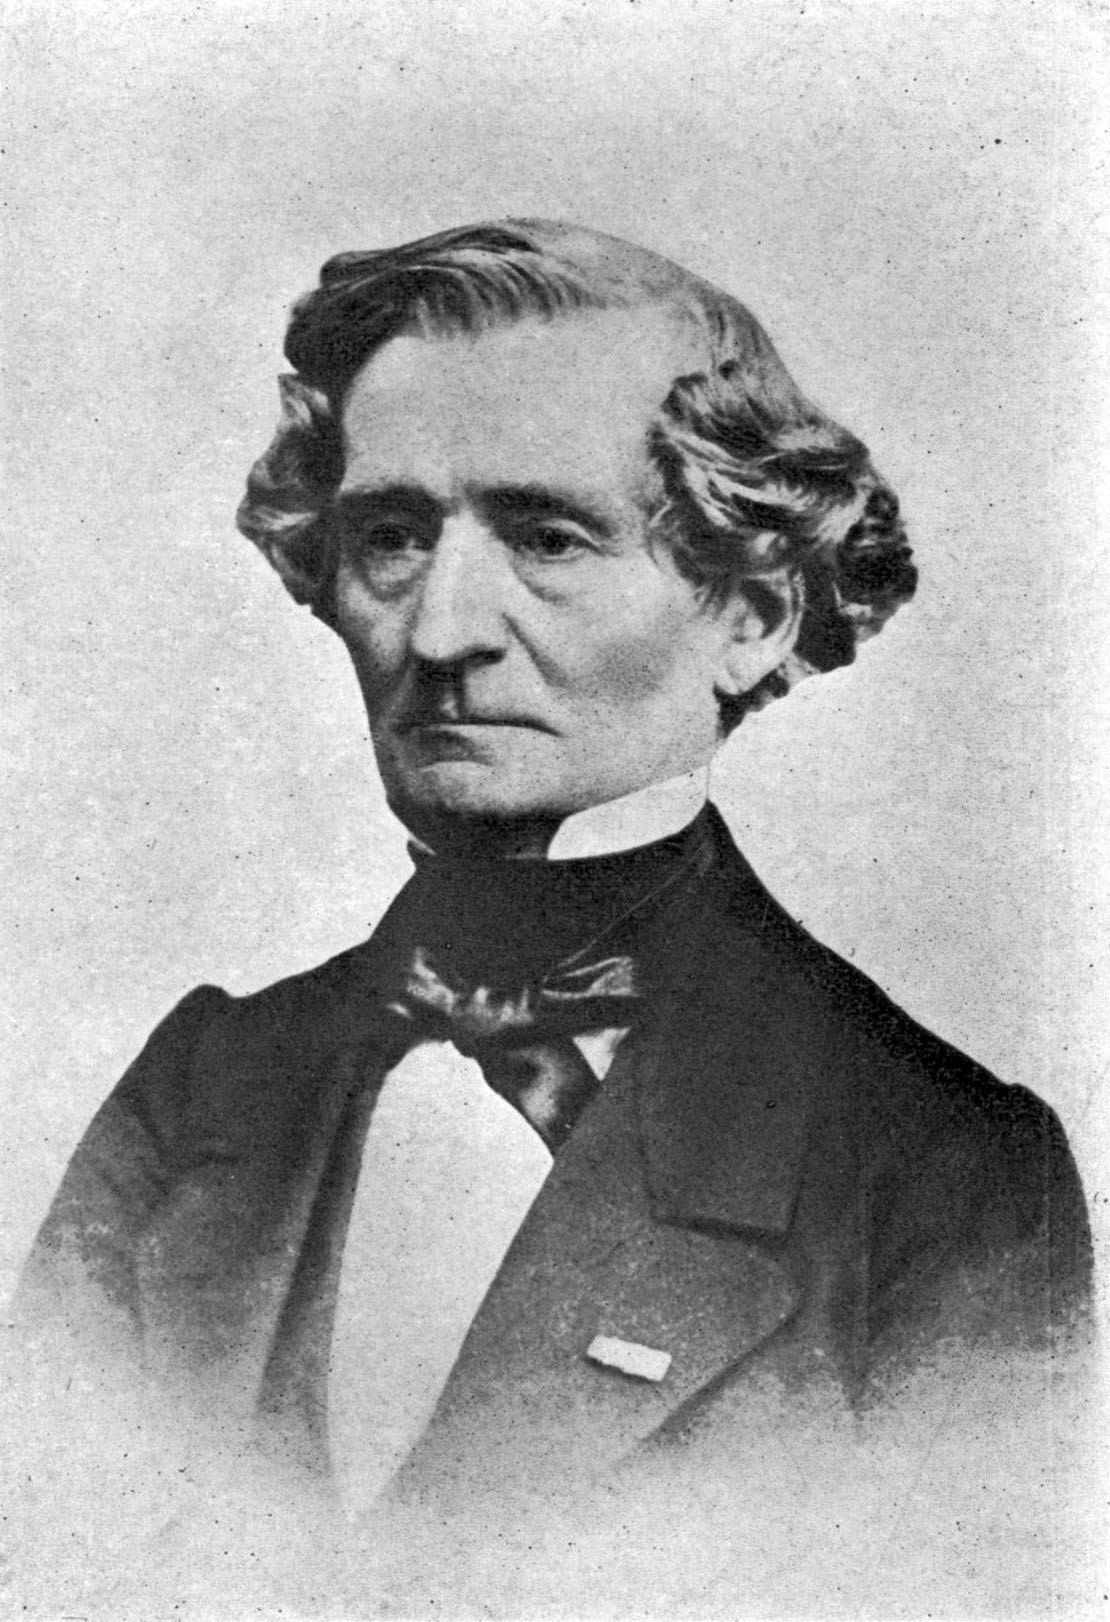 an analysis of the works of hector berlioz Hector berlioz born december 11,  overture to benvenuto cellini berlioz composed his opera  most popular works) the overture to benvenuto cellini is a mini.